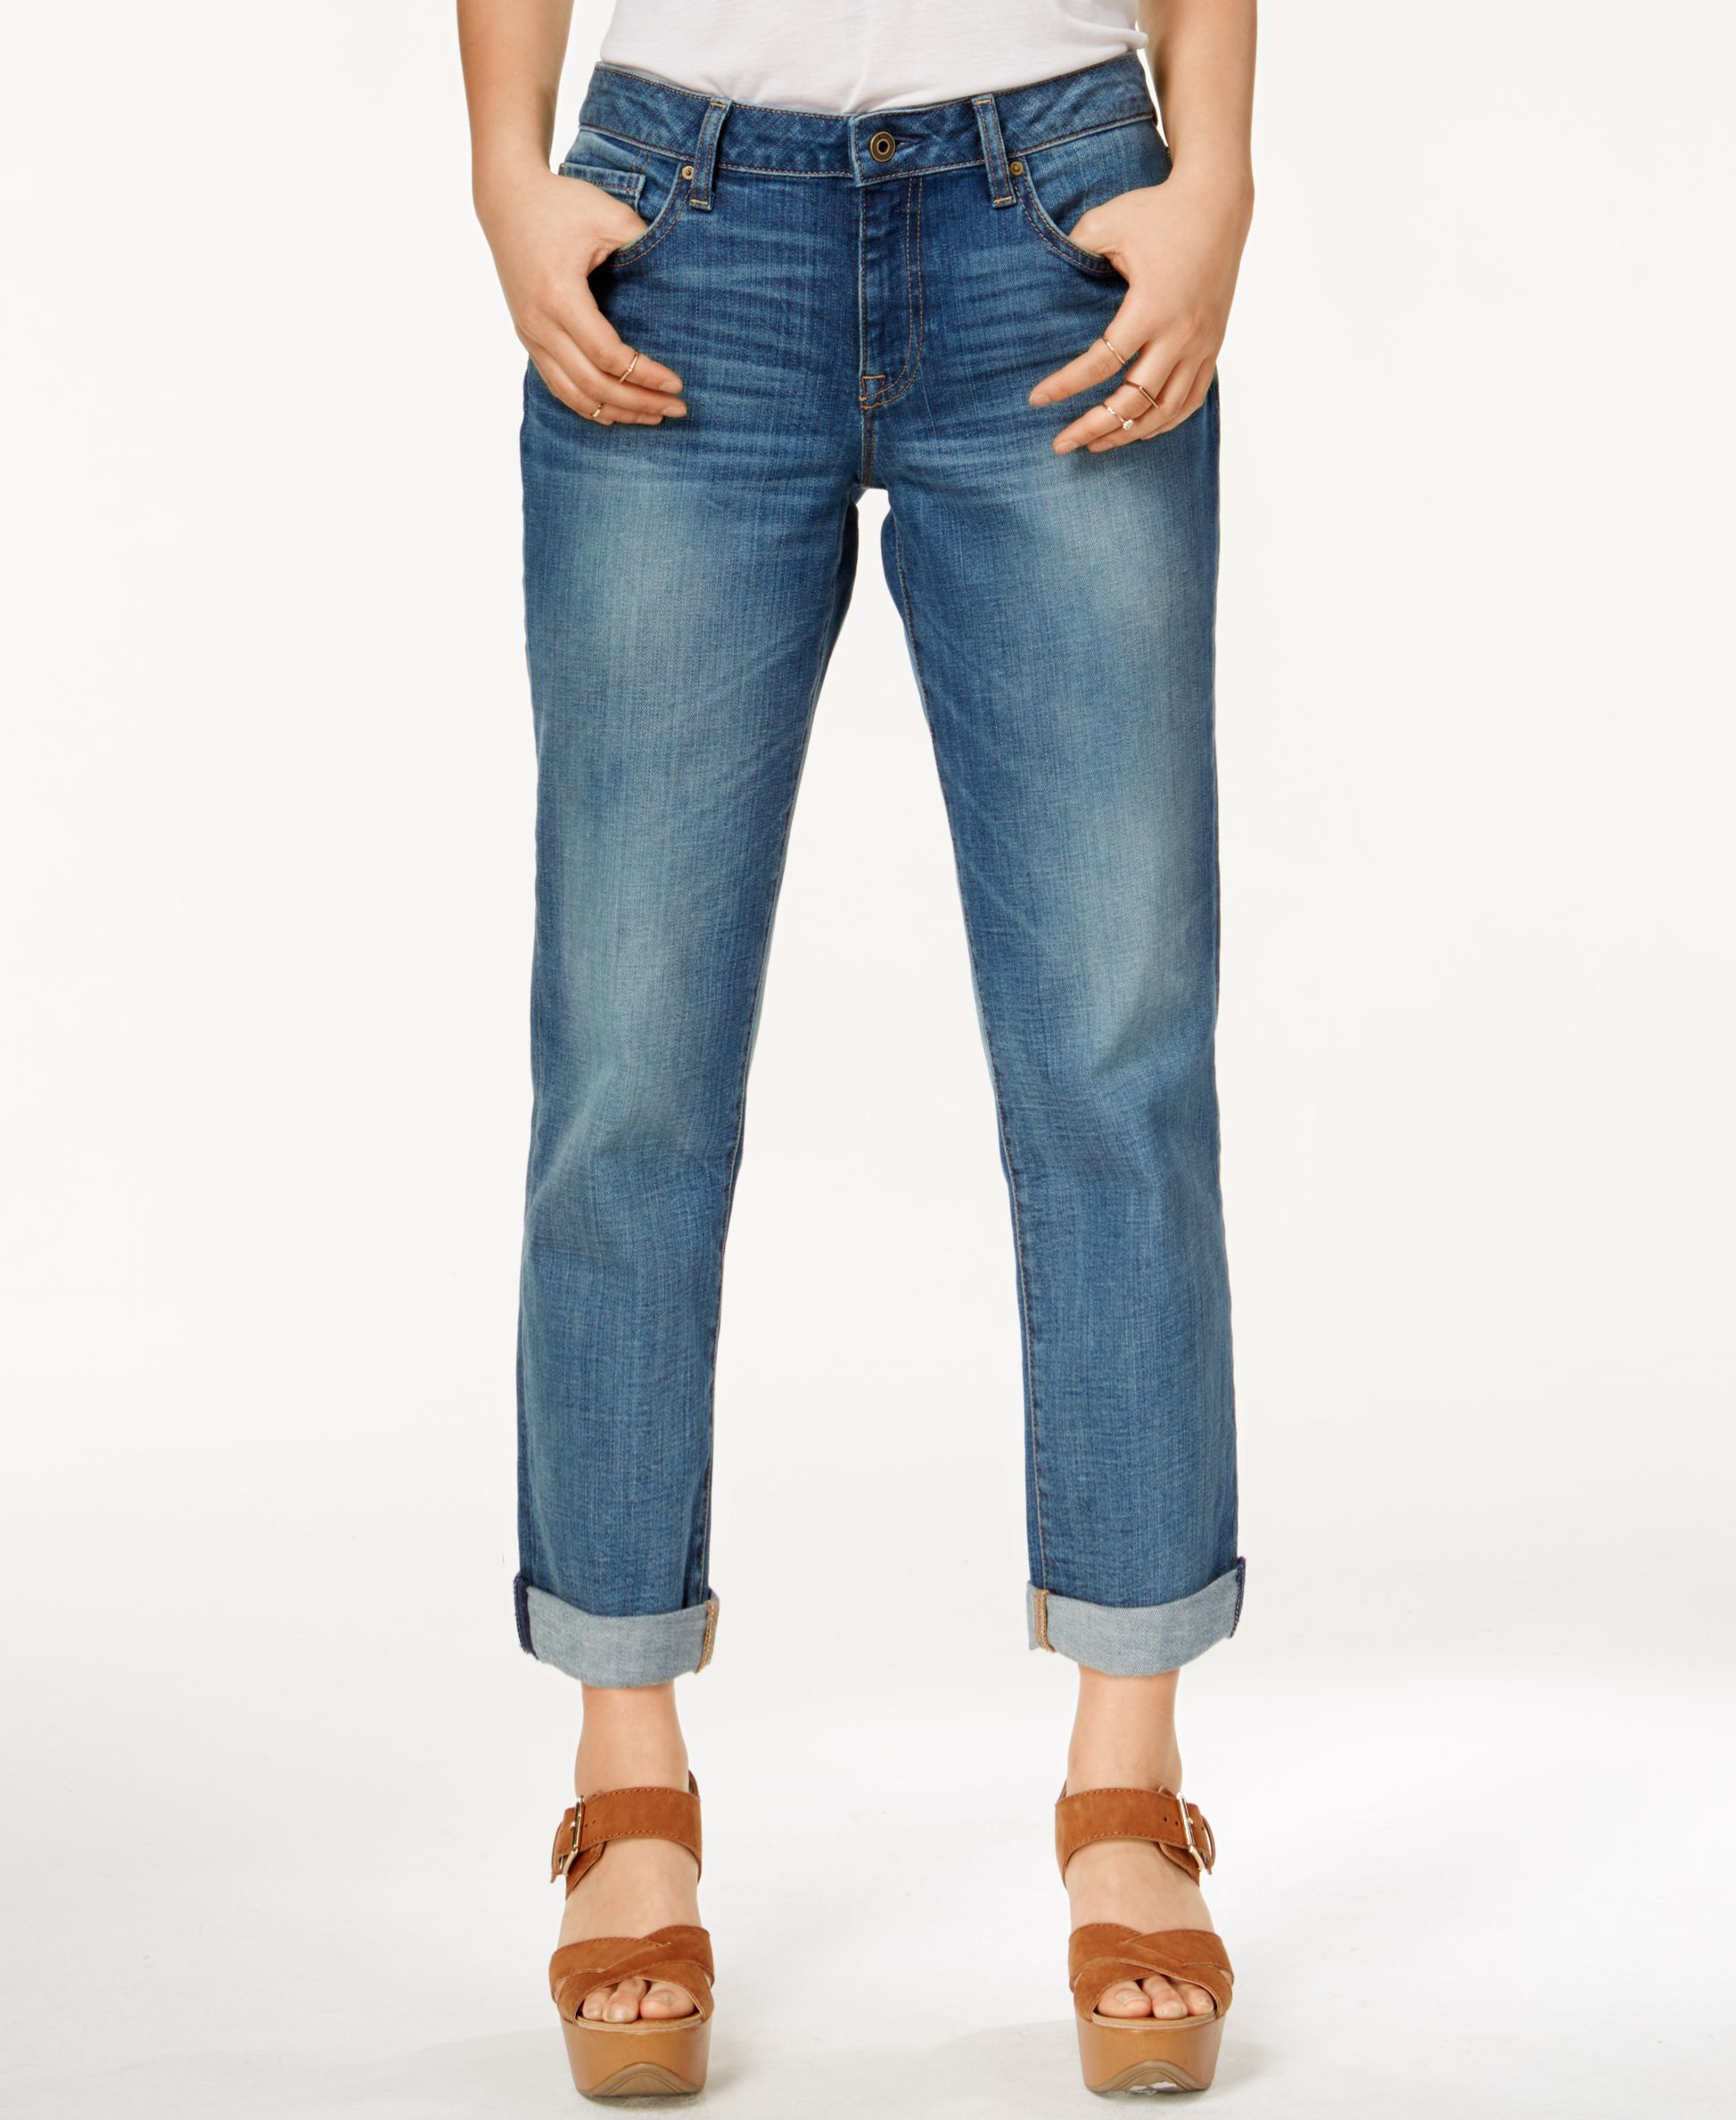 a1e8e22b Tommy Hilfiger Fleetwood Medium Wash Boyfriend Jeans | This & That ...